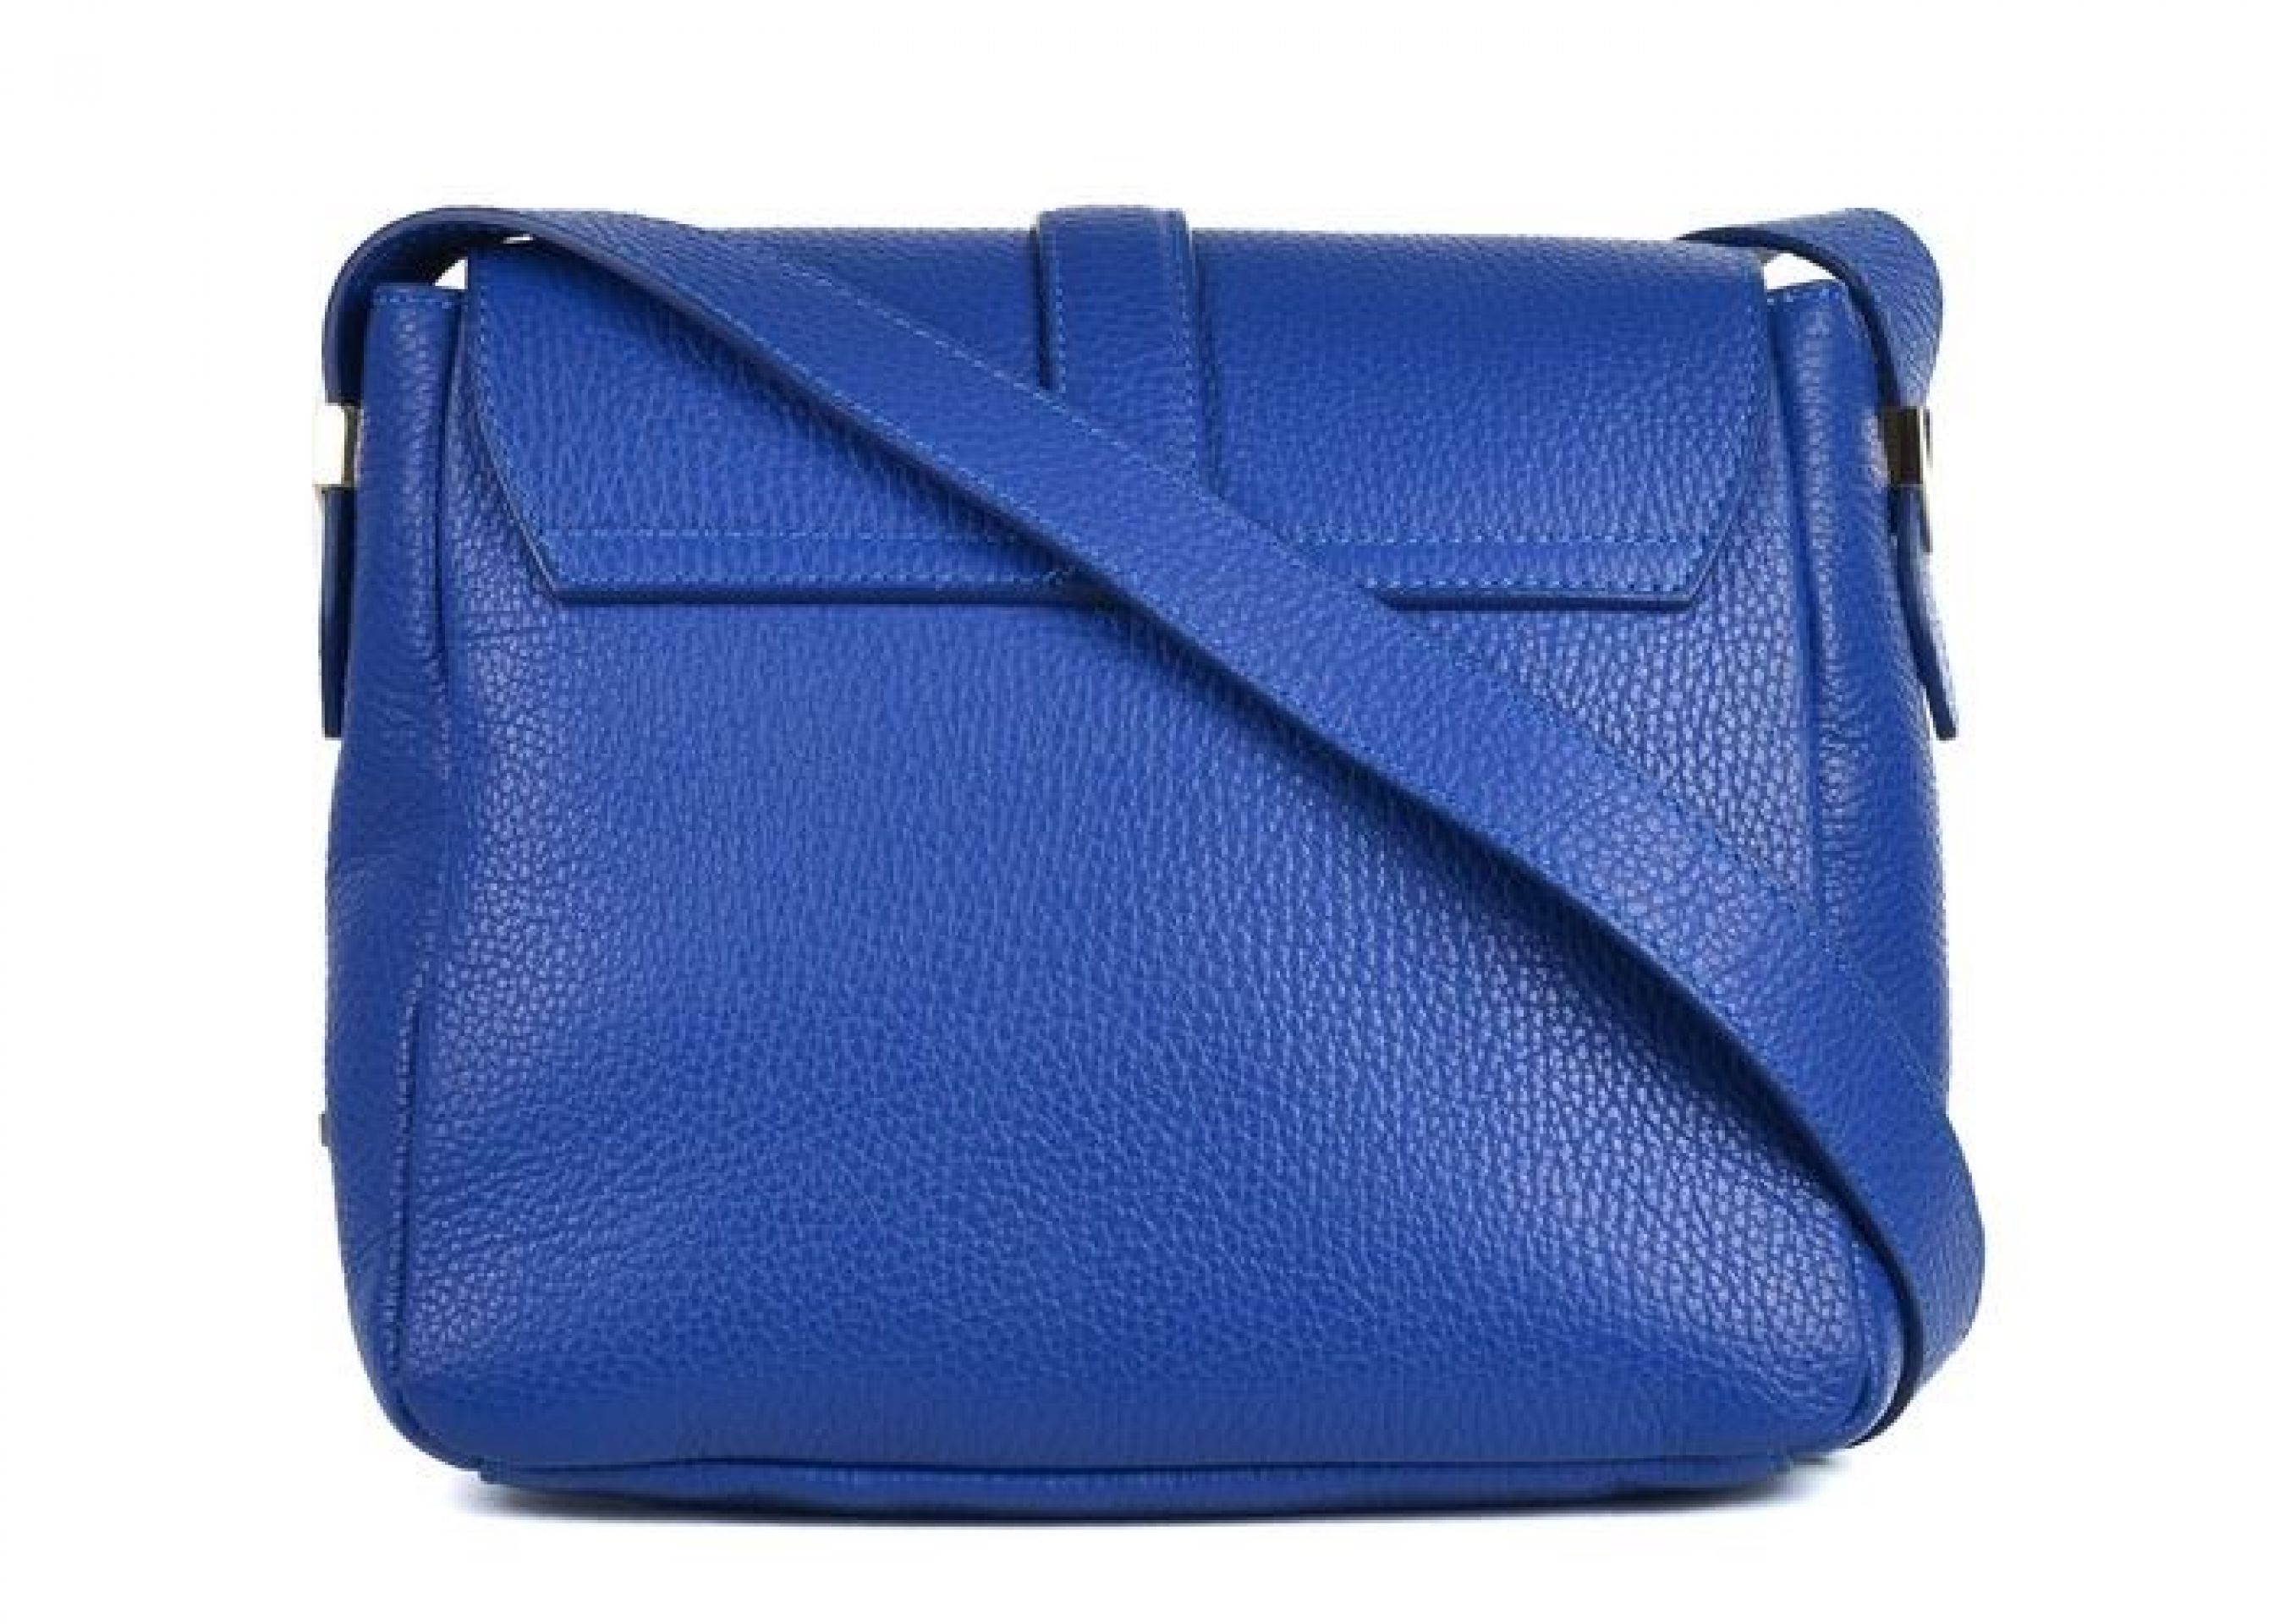 VERSACE COLLECTION SOLID BLUE GRAINED LEATHER ARROW SHOULDER BAG